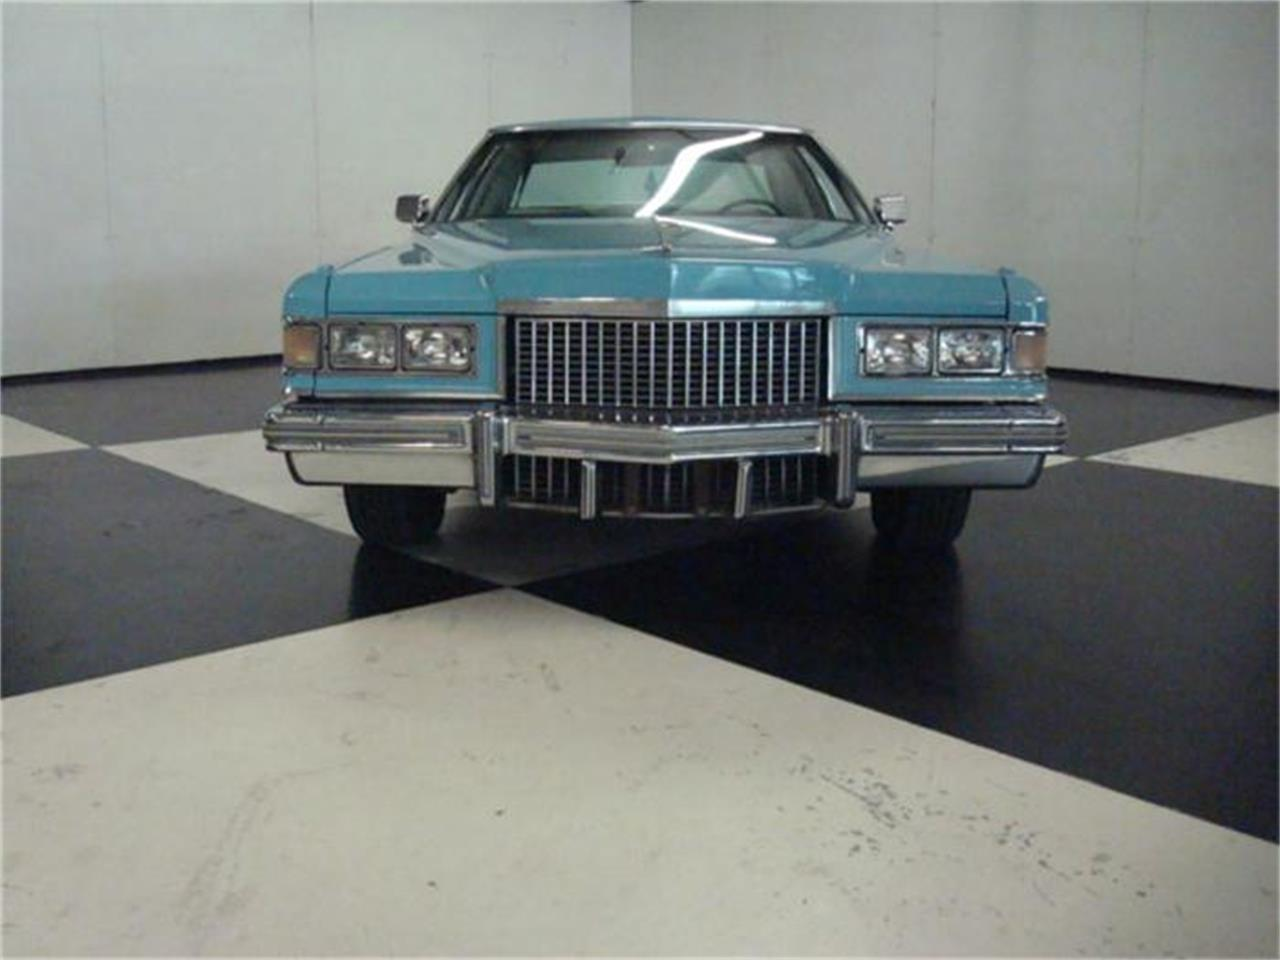 1975 Cadillac Coupe DeVille (CC-439339) for sale in Lillington, North Carolina